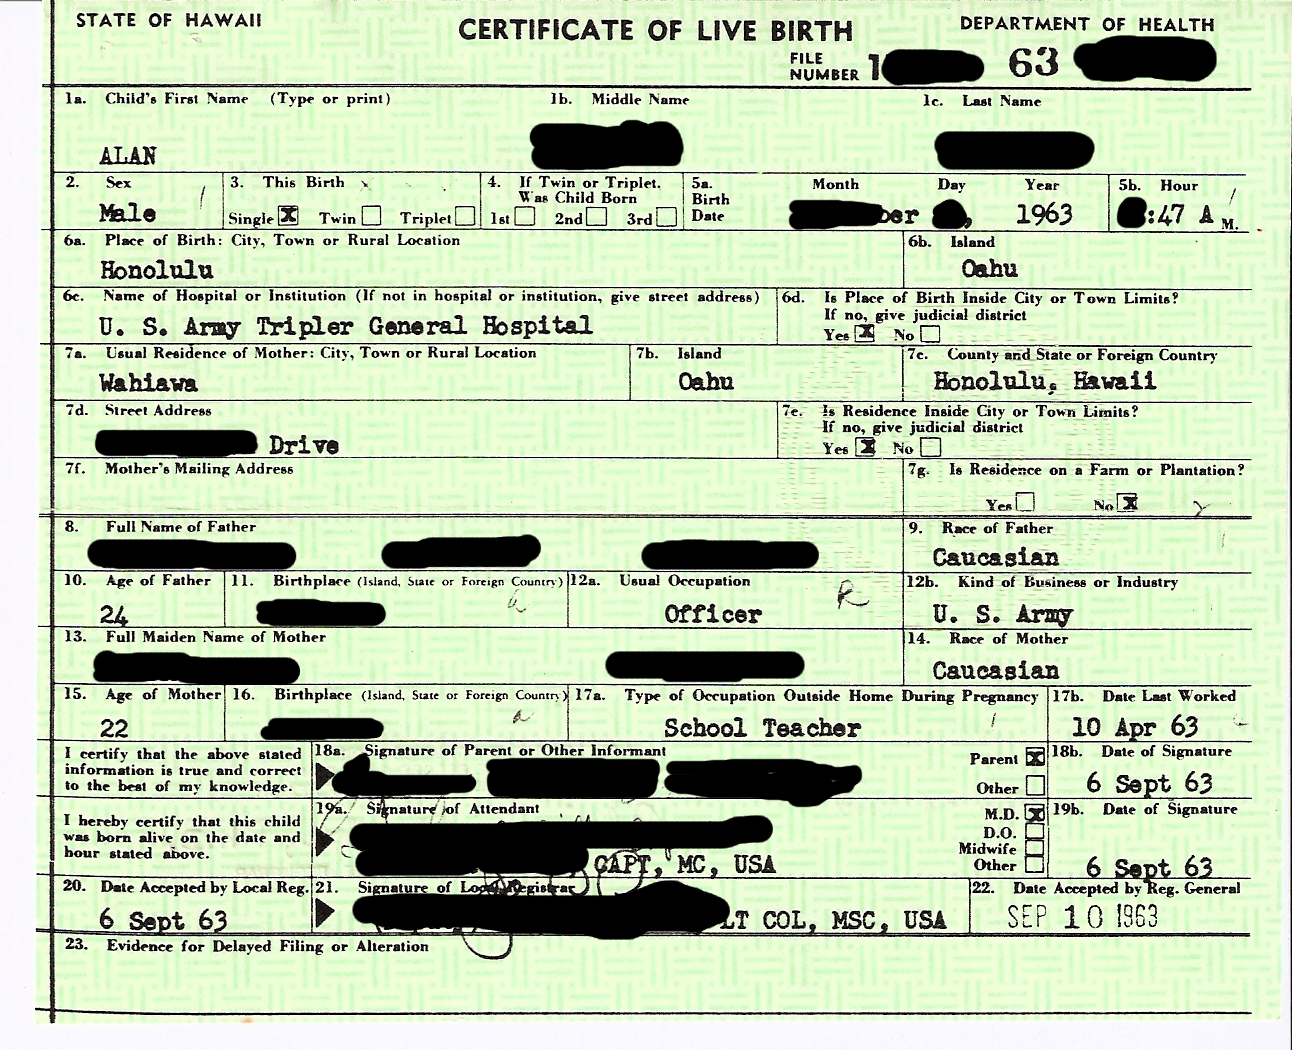 Hawaii birth certificate 1963 snarkybytes hawaii birth certificate 1963 aiddatafo Gallery